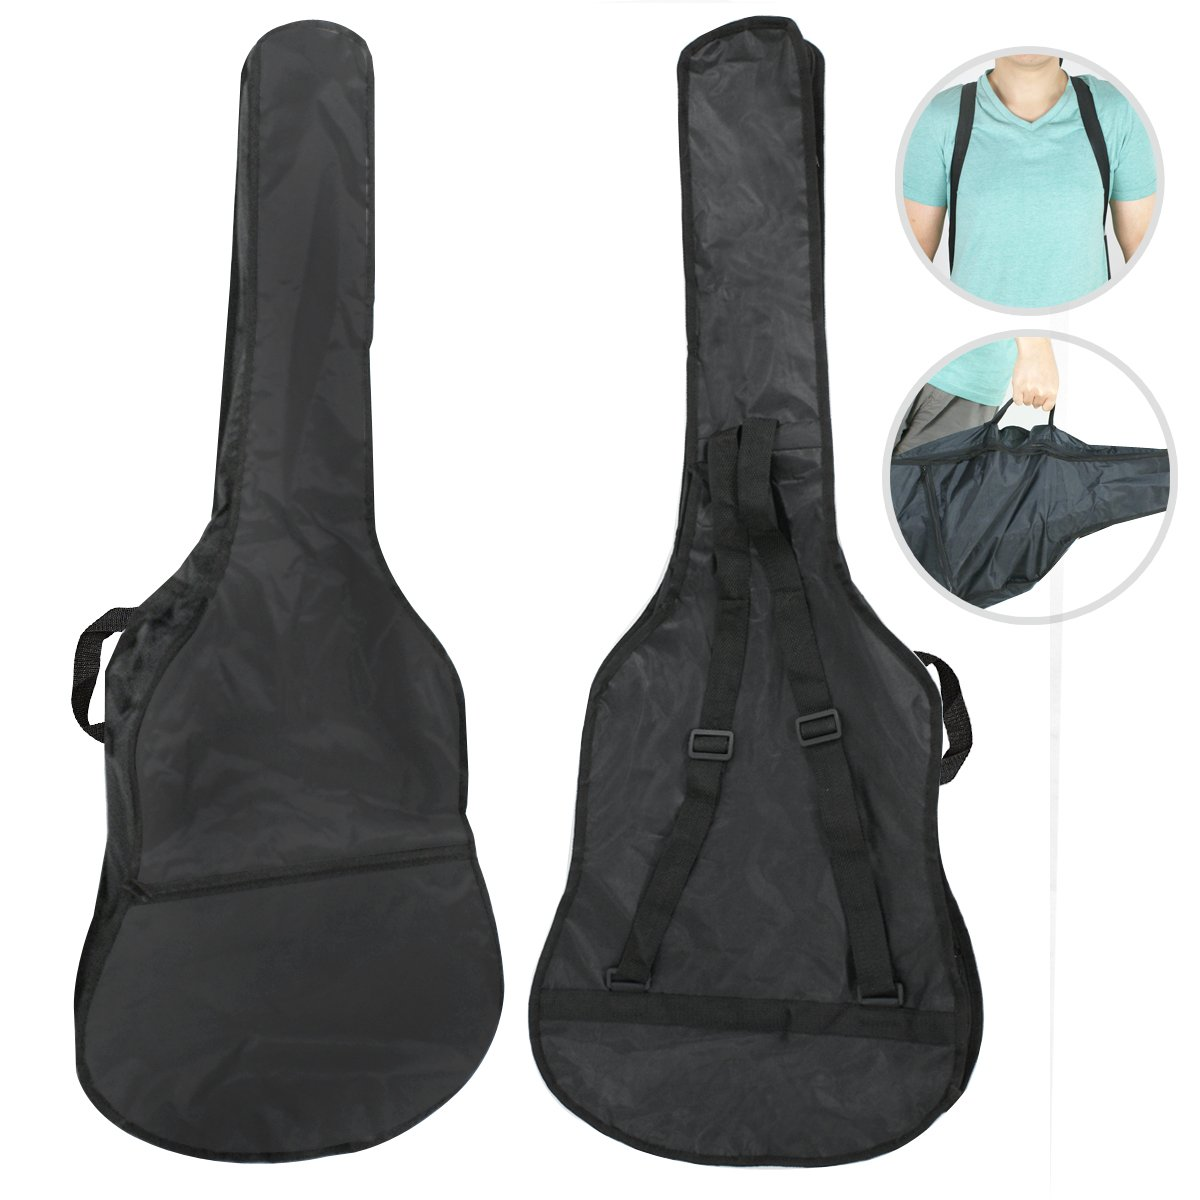 Guitar bag for the Black ZENY Electric Guitar